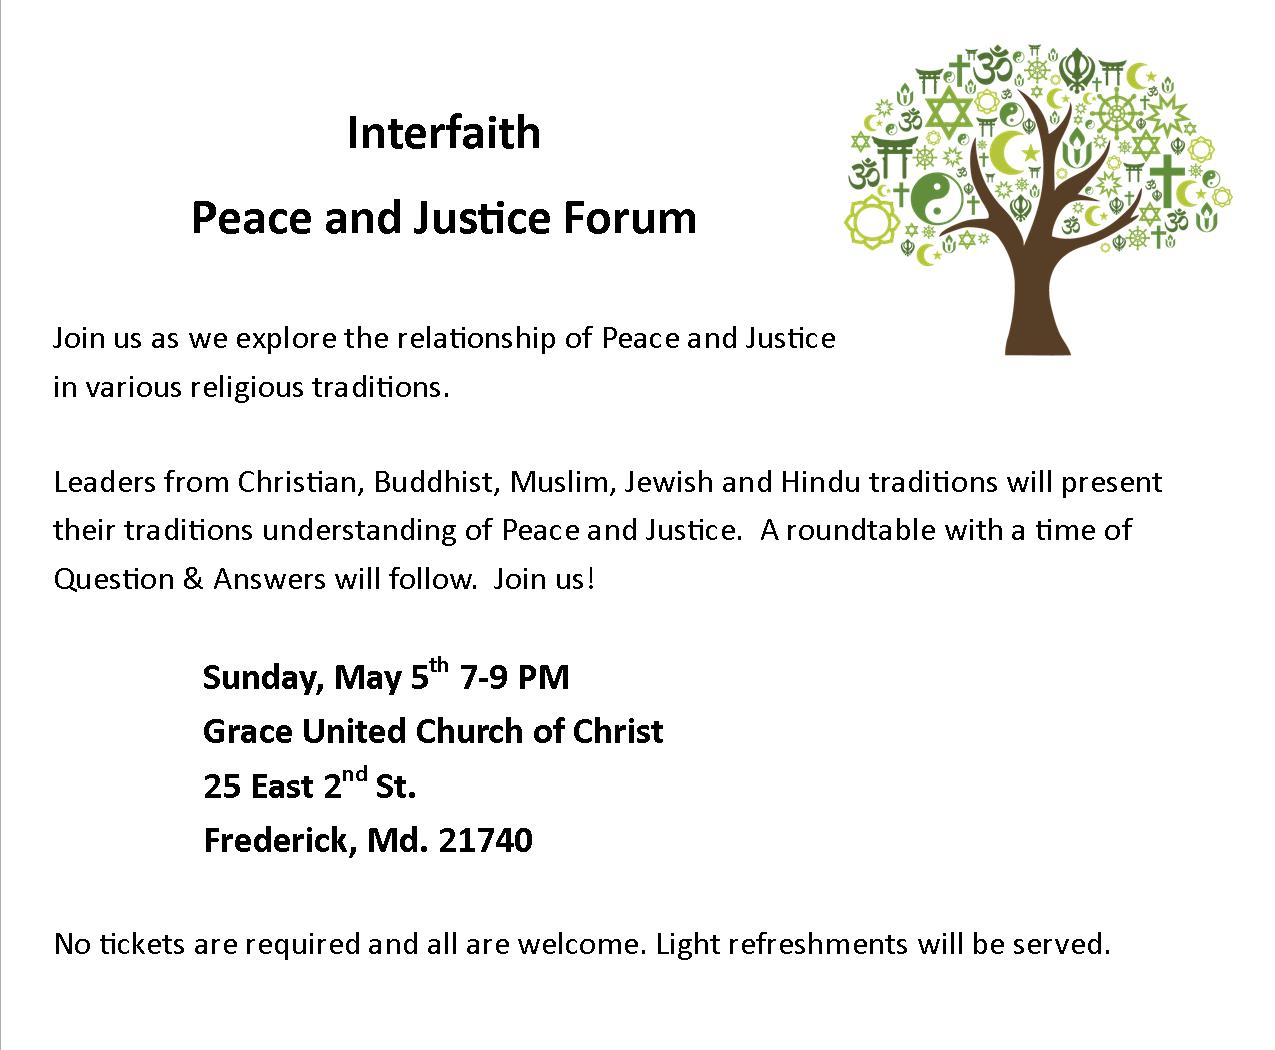 interfaith peace and justice forum short